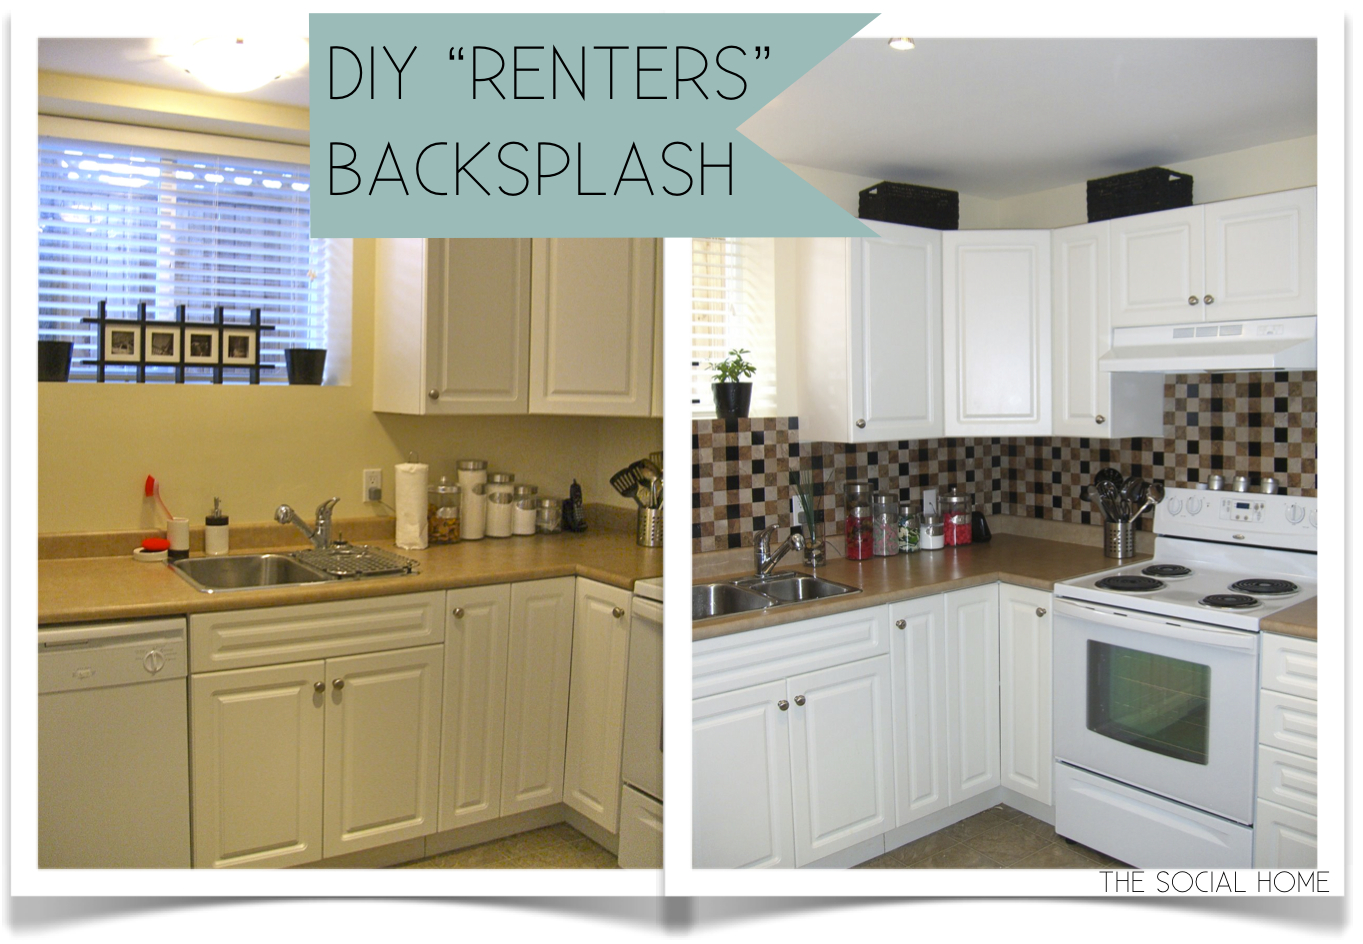 Diy renters backsplash with vinyl tile dailygadgetfo Image collections